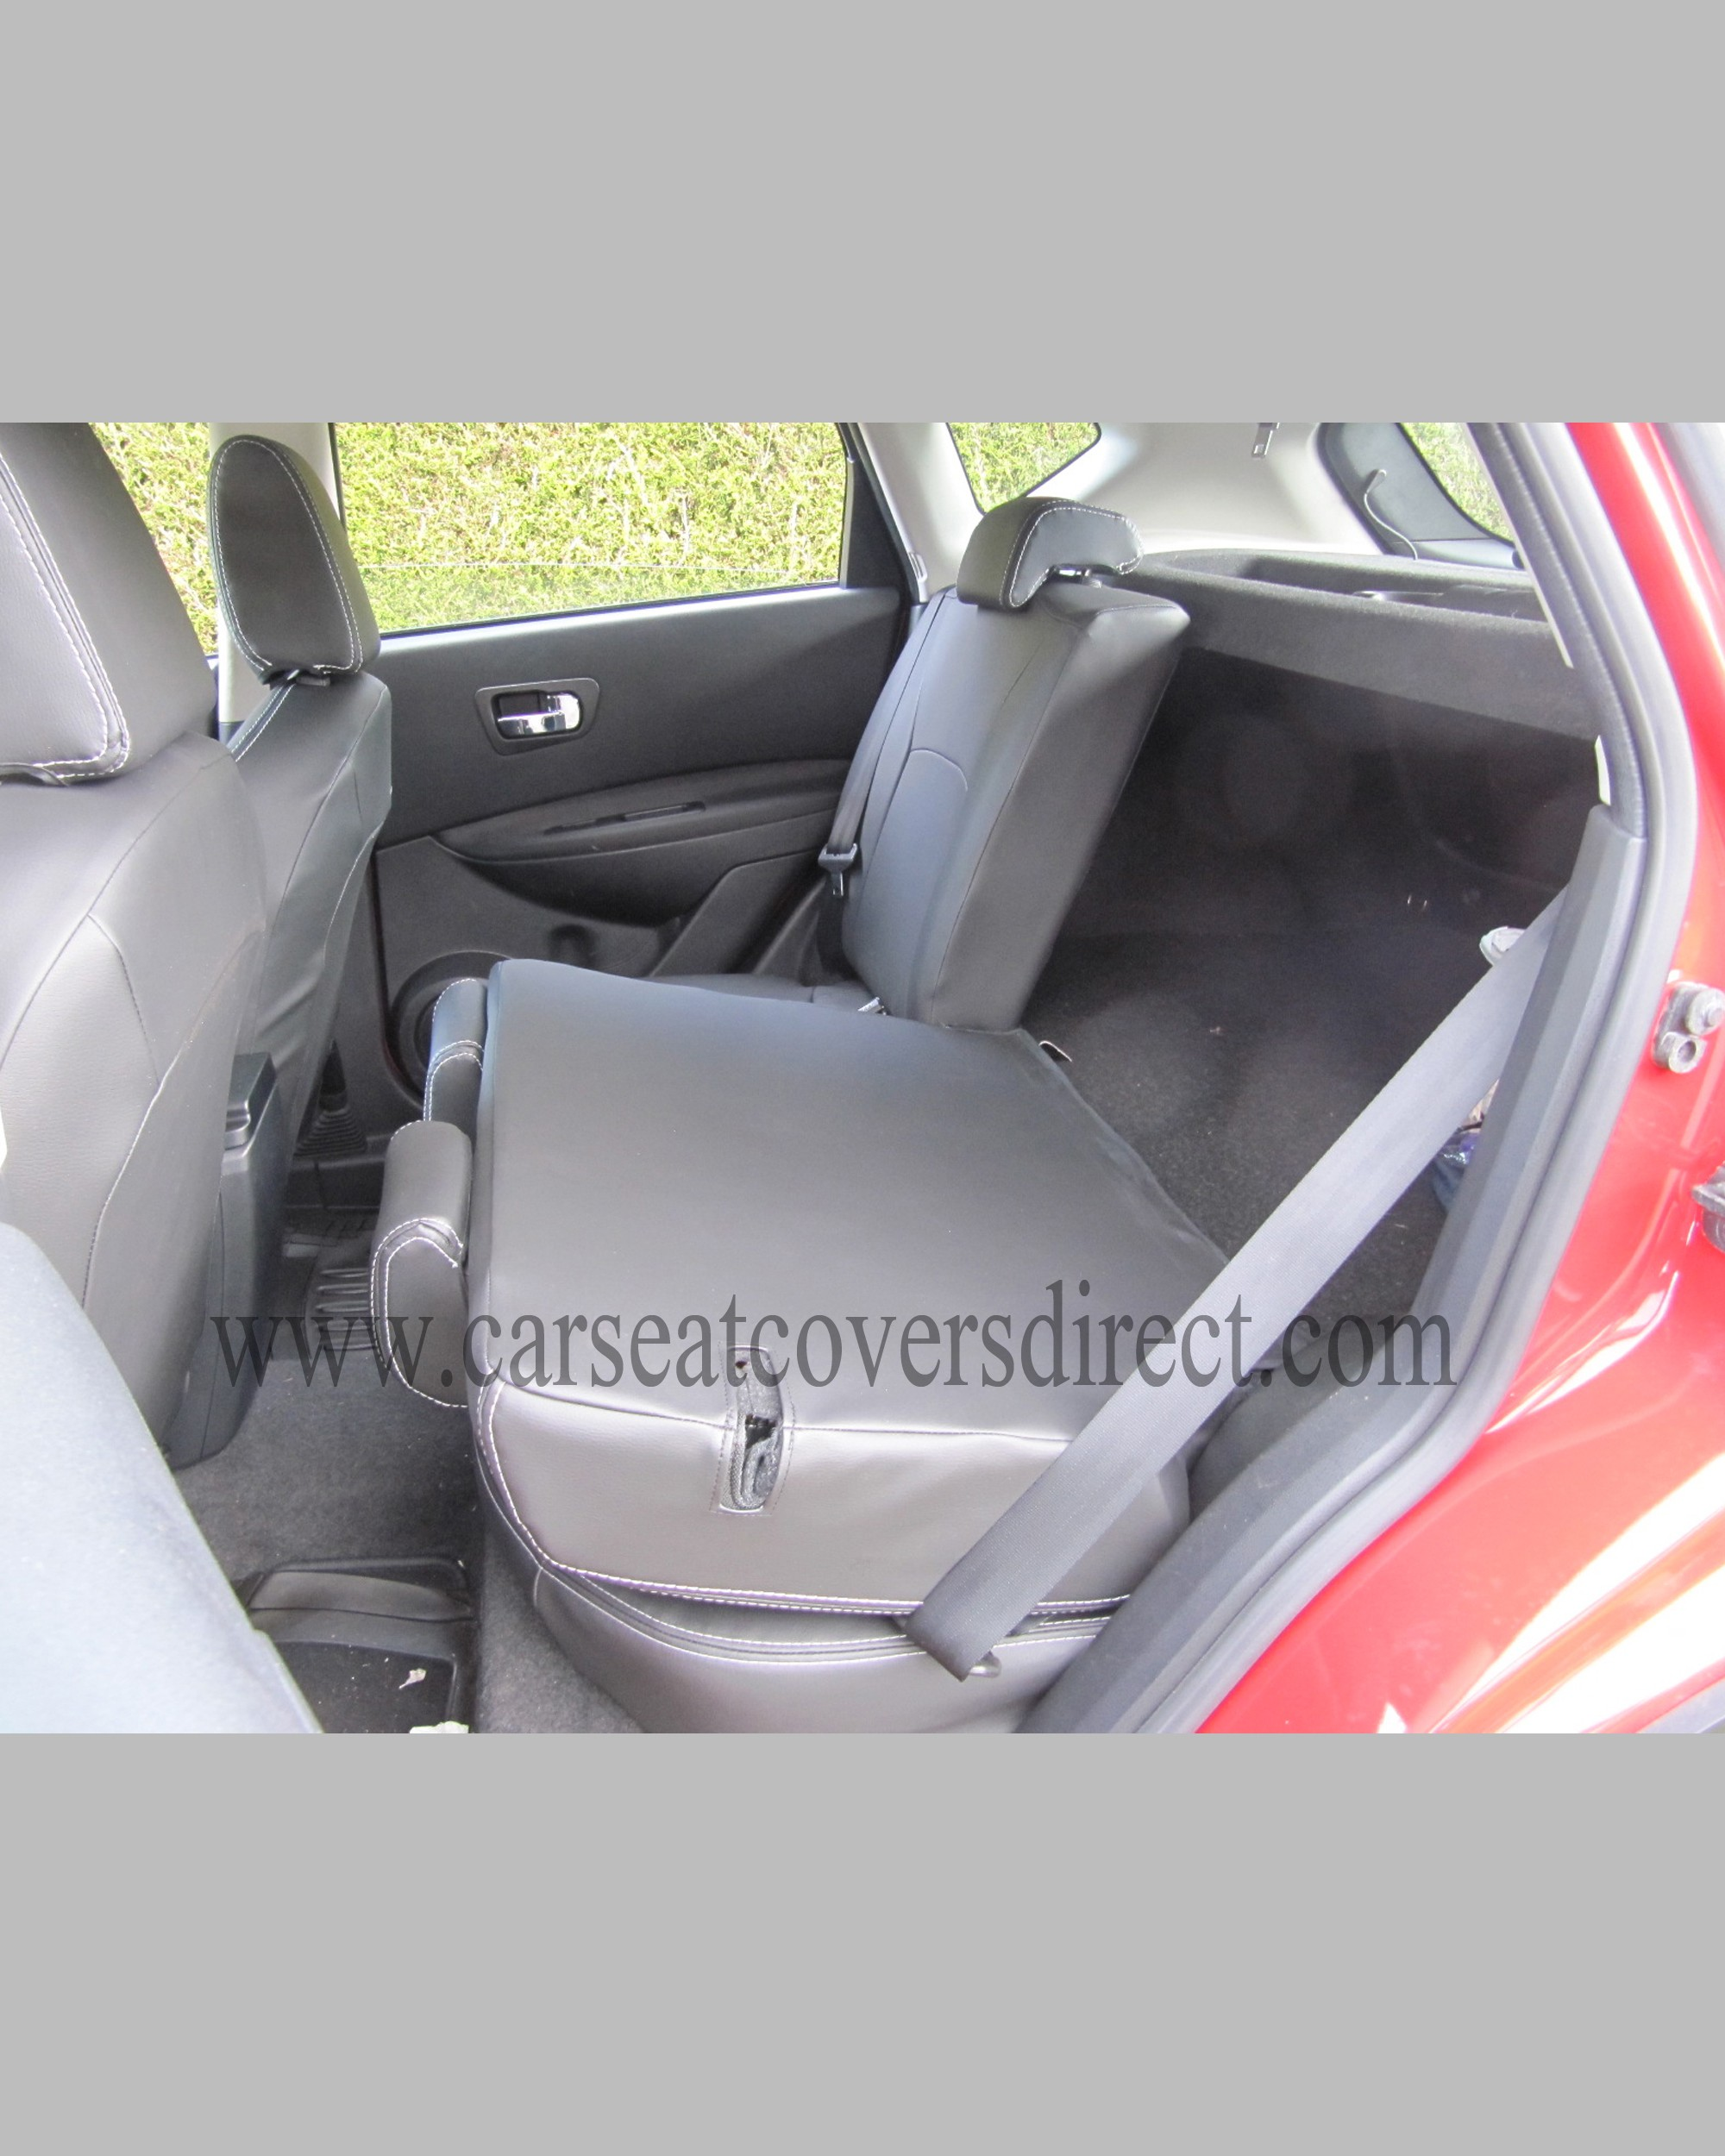 NISSAN QASHQAI Seat Covers Car Seat Covers Direct